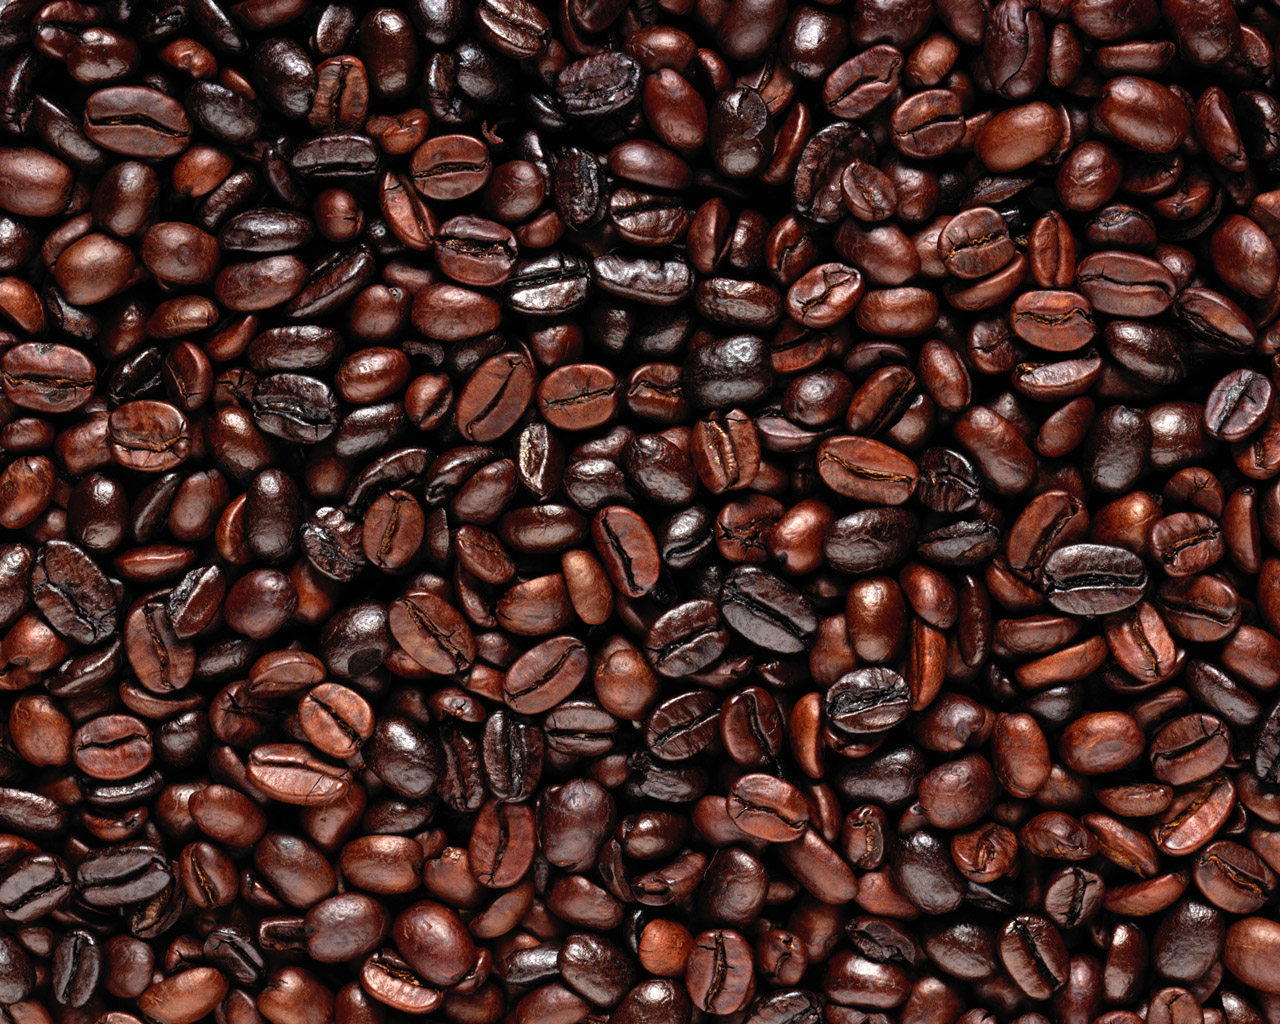 Free Coffee Beans Wallpaper 42405 1920x1200 px